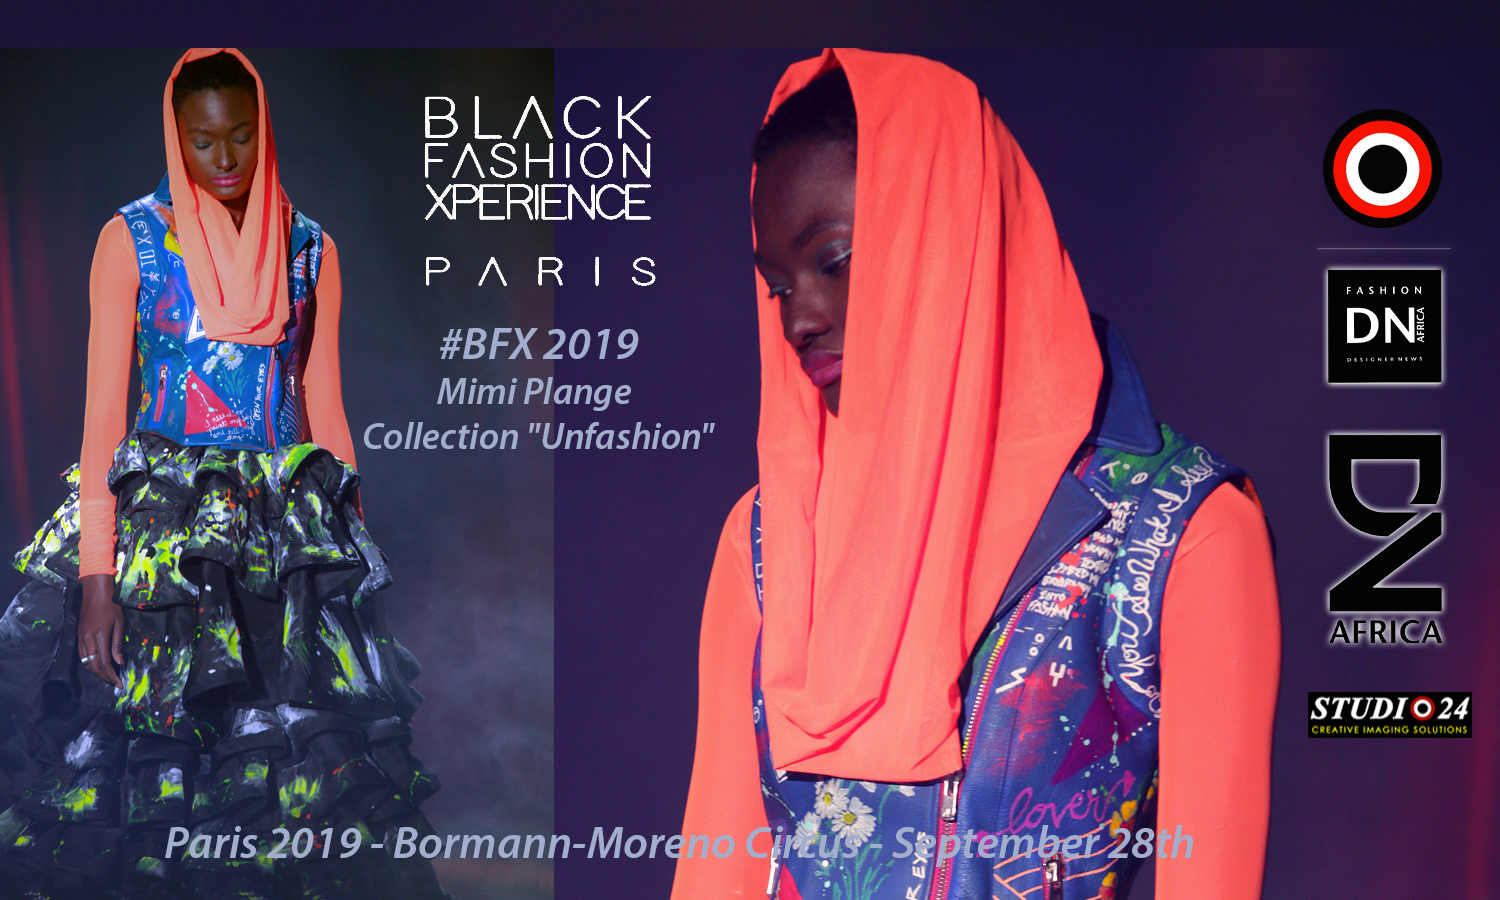 "AFRICAN FASHION STYLE MAGAZINE - Black-Fashion-Xperience-2019-Organizer by Adama-Paris - Designer Mimi Plange - - Collection ""Unfashion"" - PR Indirâh Events and Communication - Photographer DAN NGU - Official Media Partner DN AFRICA - STUDIO 24 NIGERIA - STUDIO 24 INTERNATIONAL - Ifeanyi Christopher Oputa MD AND CEO OF COLVI LIMITED AND STUDIO 24 - CHEVEUX CHERIE and CHEVEUX CHERIE STUDIO BY MARIEME DUBOZ- Fashion Editor Nahomie NOOR COULIBALY"